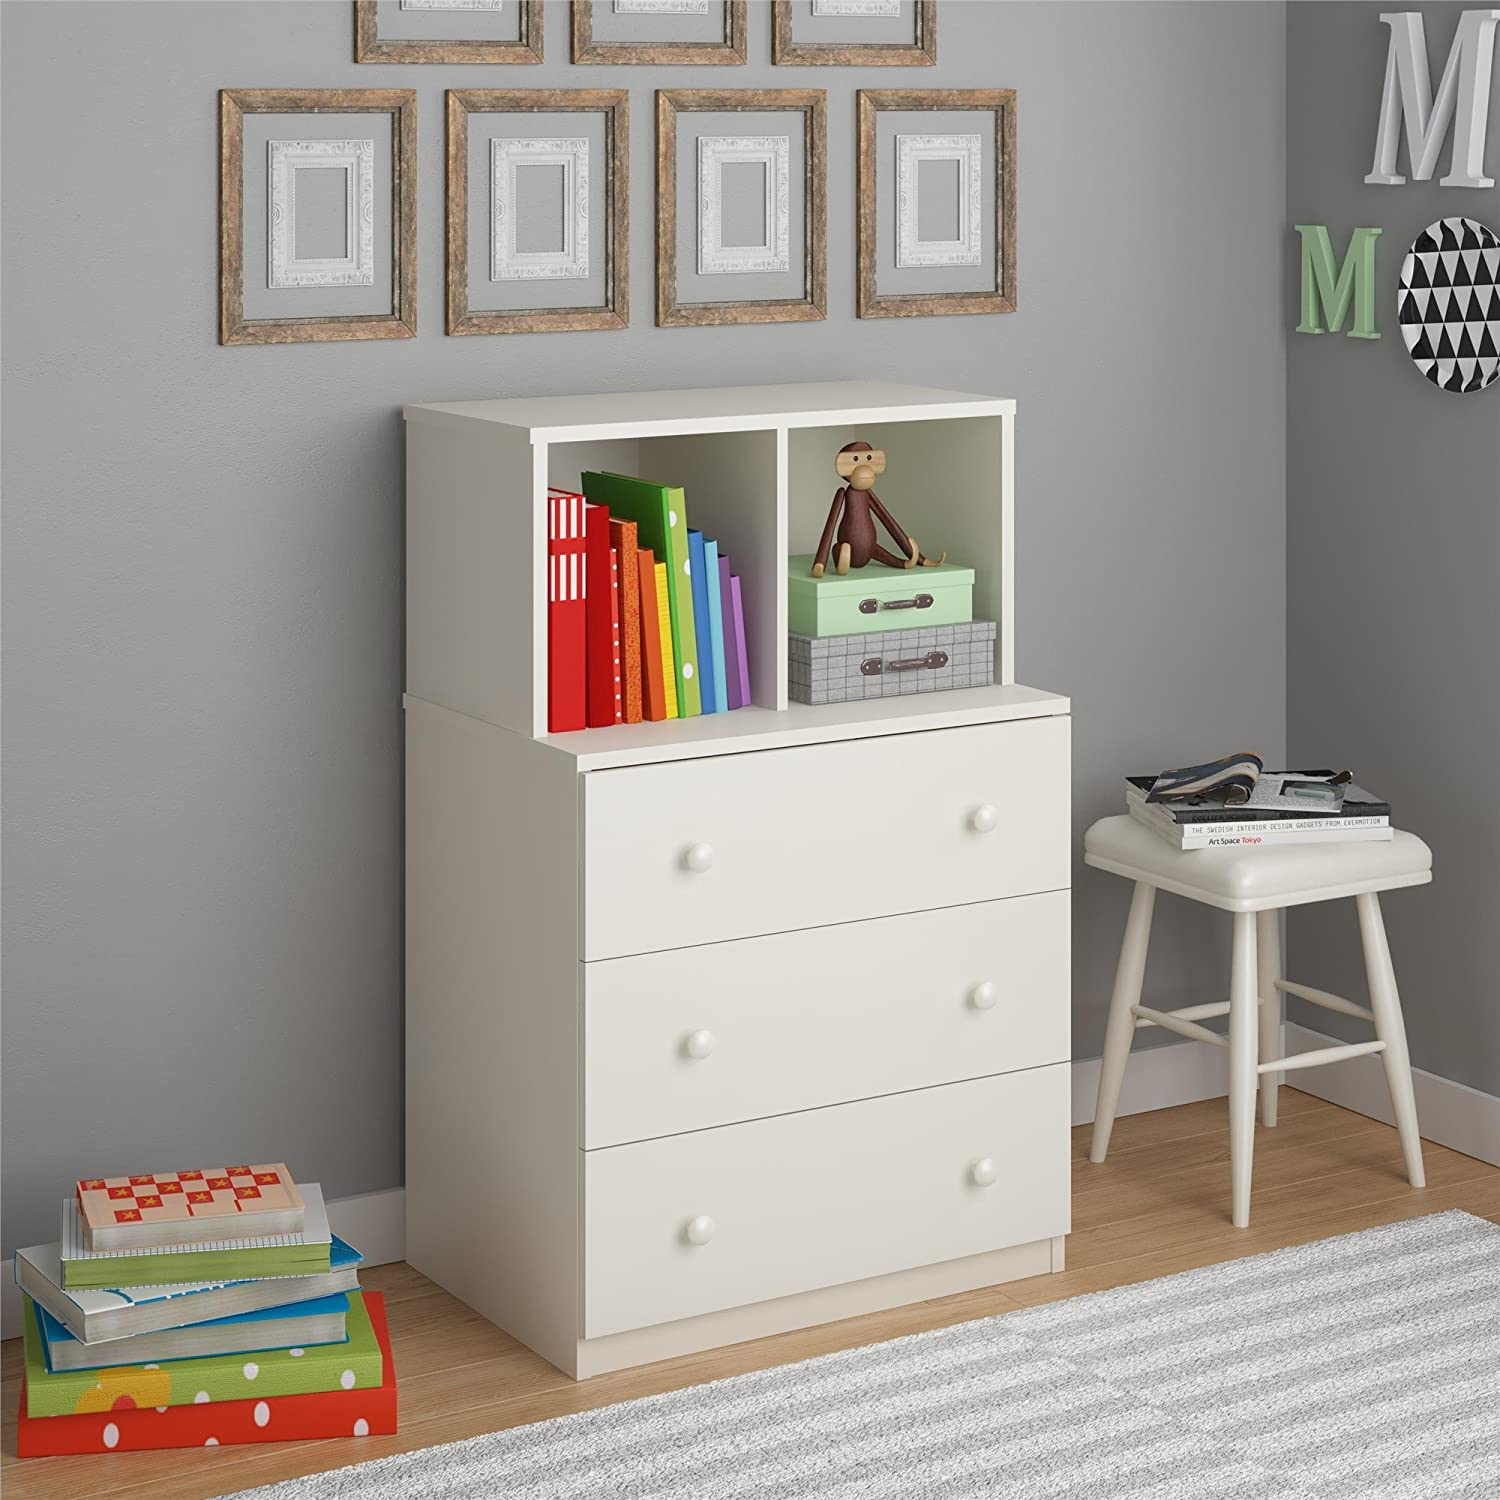 amazoncom ameriwood home skyler 3 drawer dresser with cubbies white kitchen dining - White Bedroom Dresser